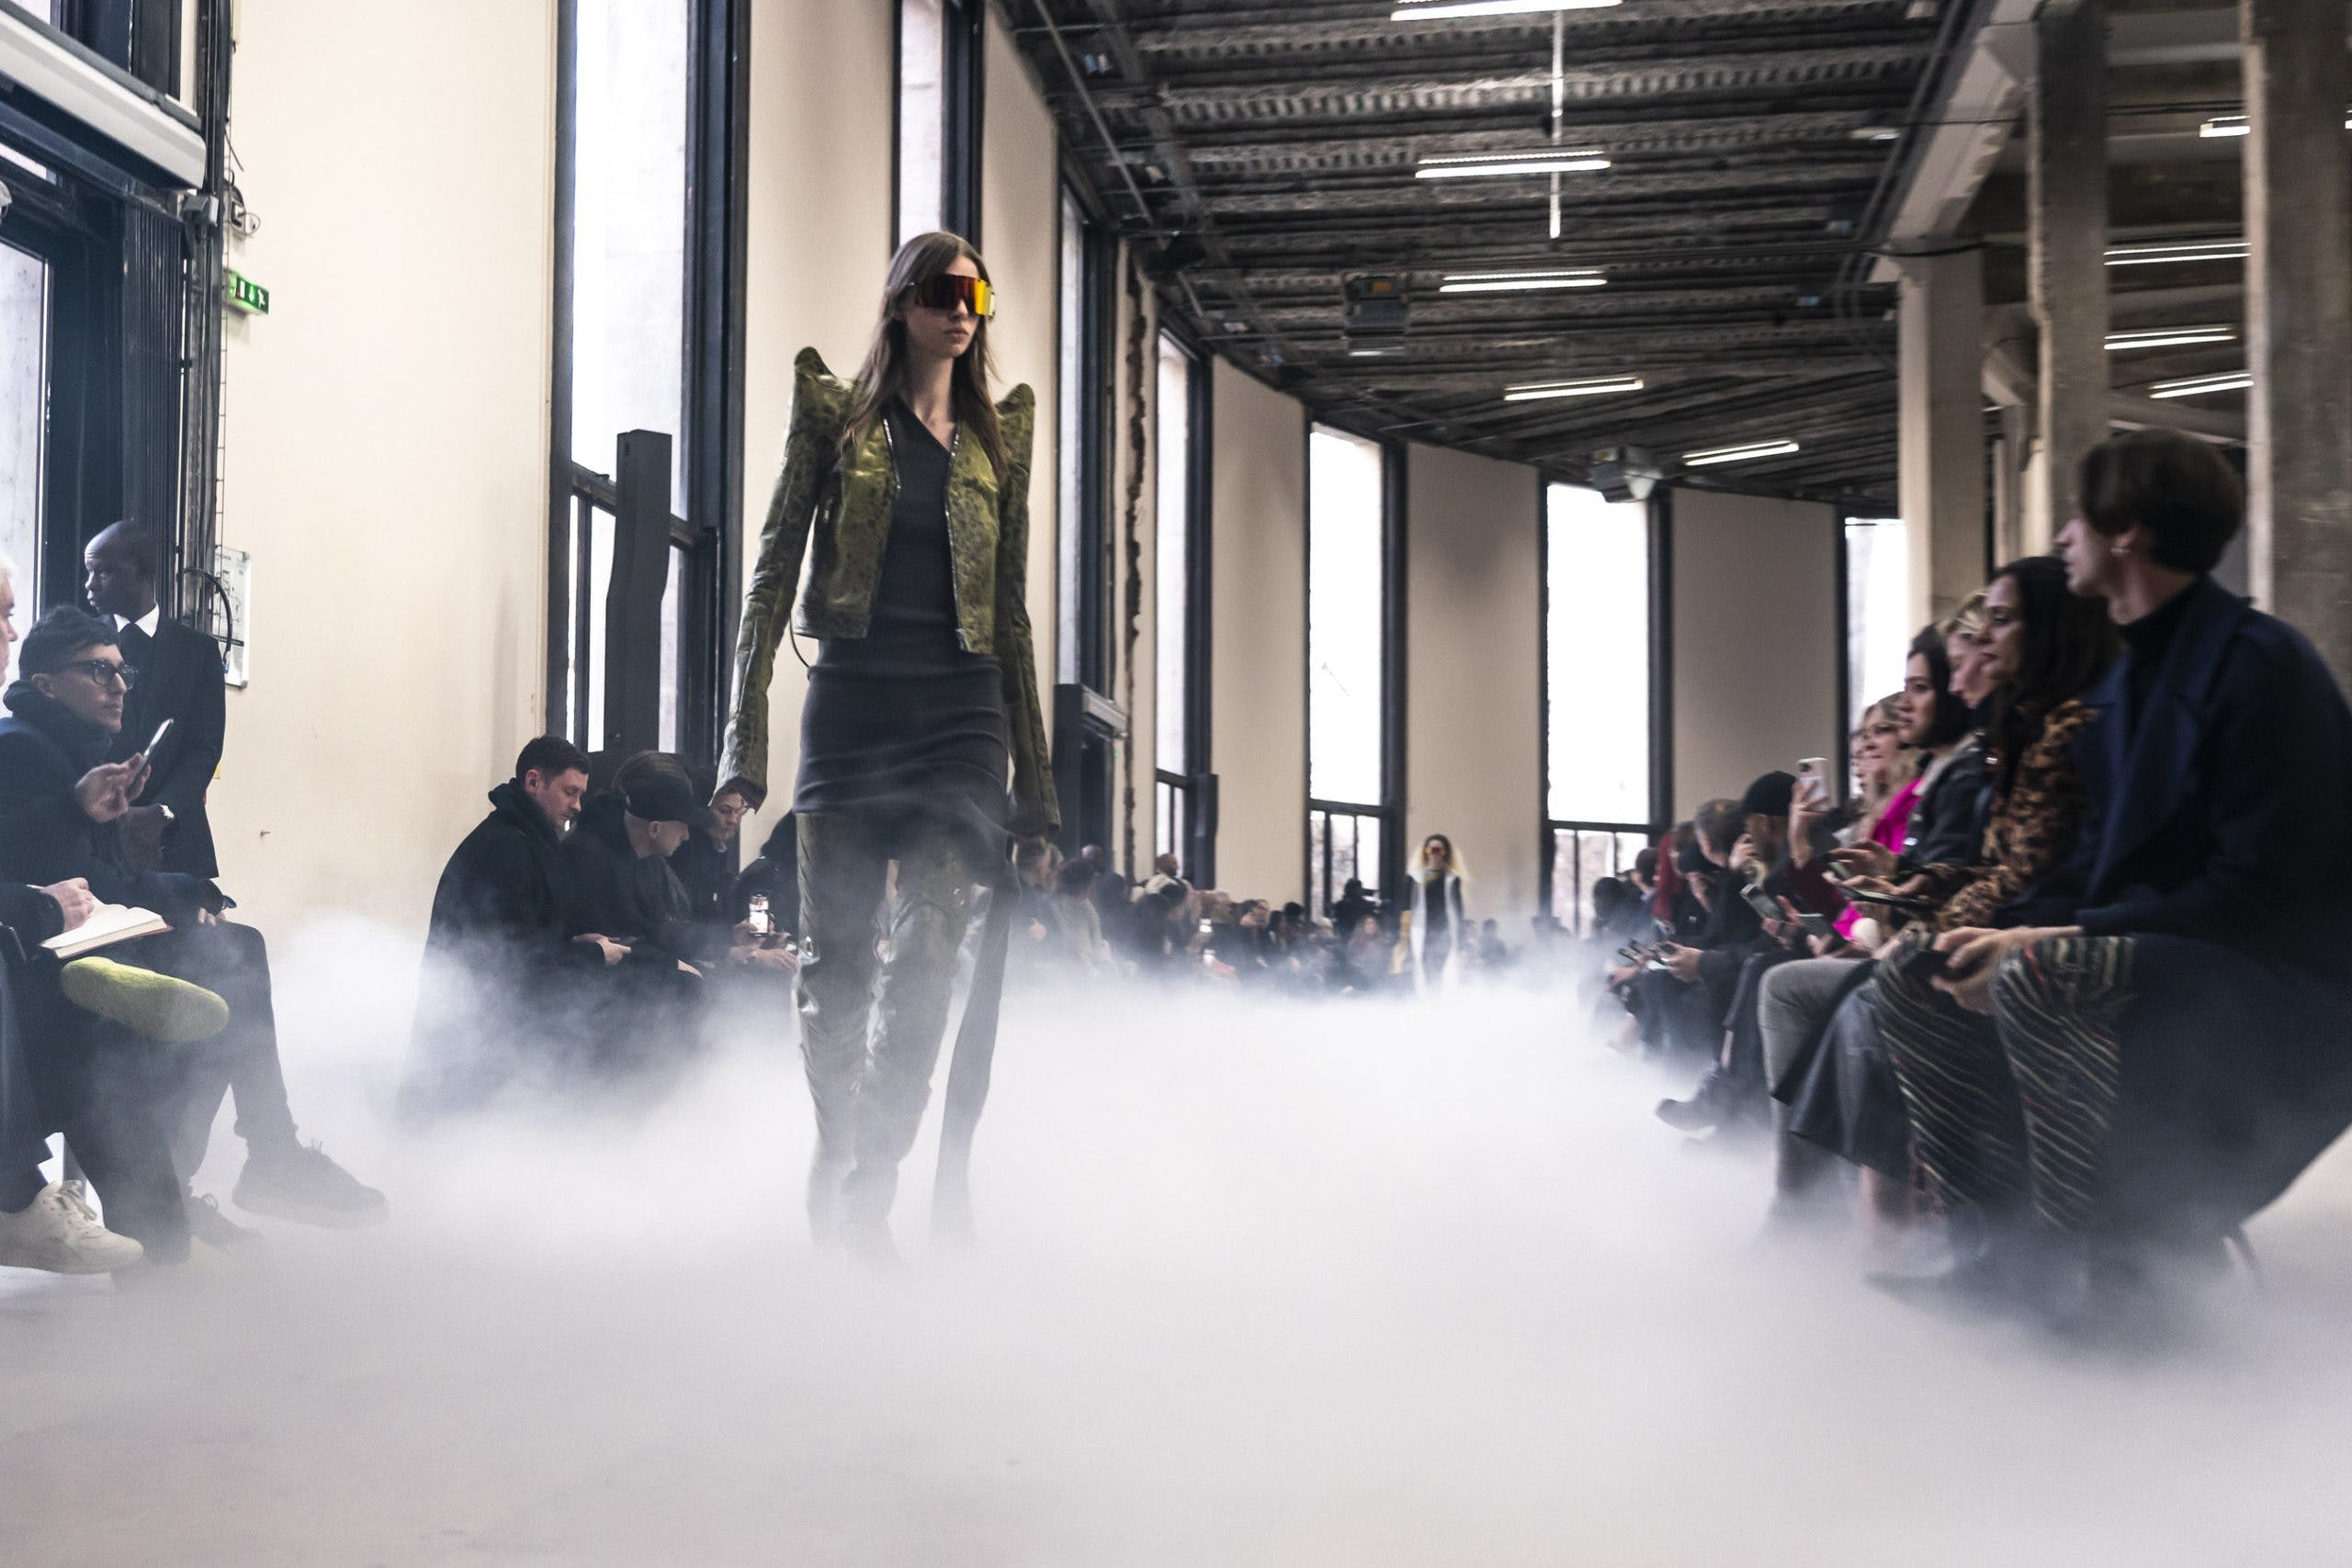 Rick Owens Runway Shield Reflective Sunglasses Sharp Shoulder Leather Jacket In Green Knot Dress High Leather Boots in Green Womens FW20 Performa